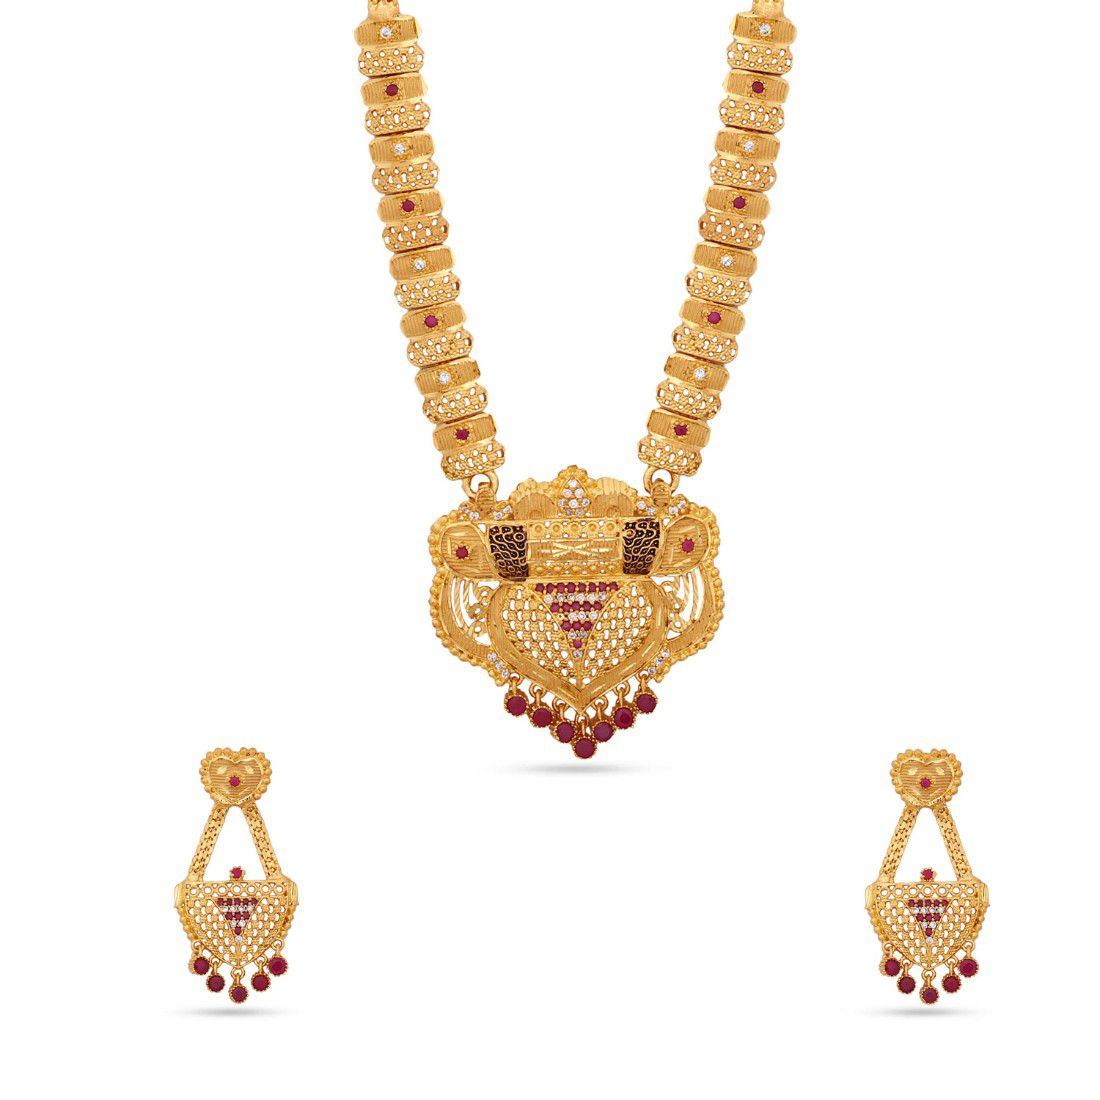 16735b66e26 Kalyani Covering 22K Gold plated Long Necklace set for Women and Girls -  Buy Kalyani Covering 22K Gold plated Long Necklace set for Women and Girls  Online ...